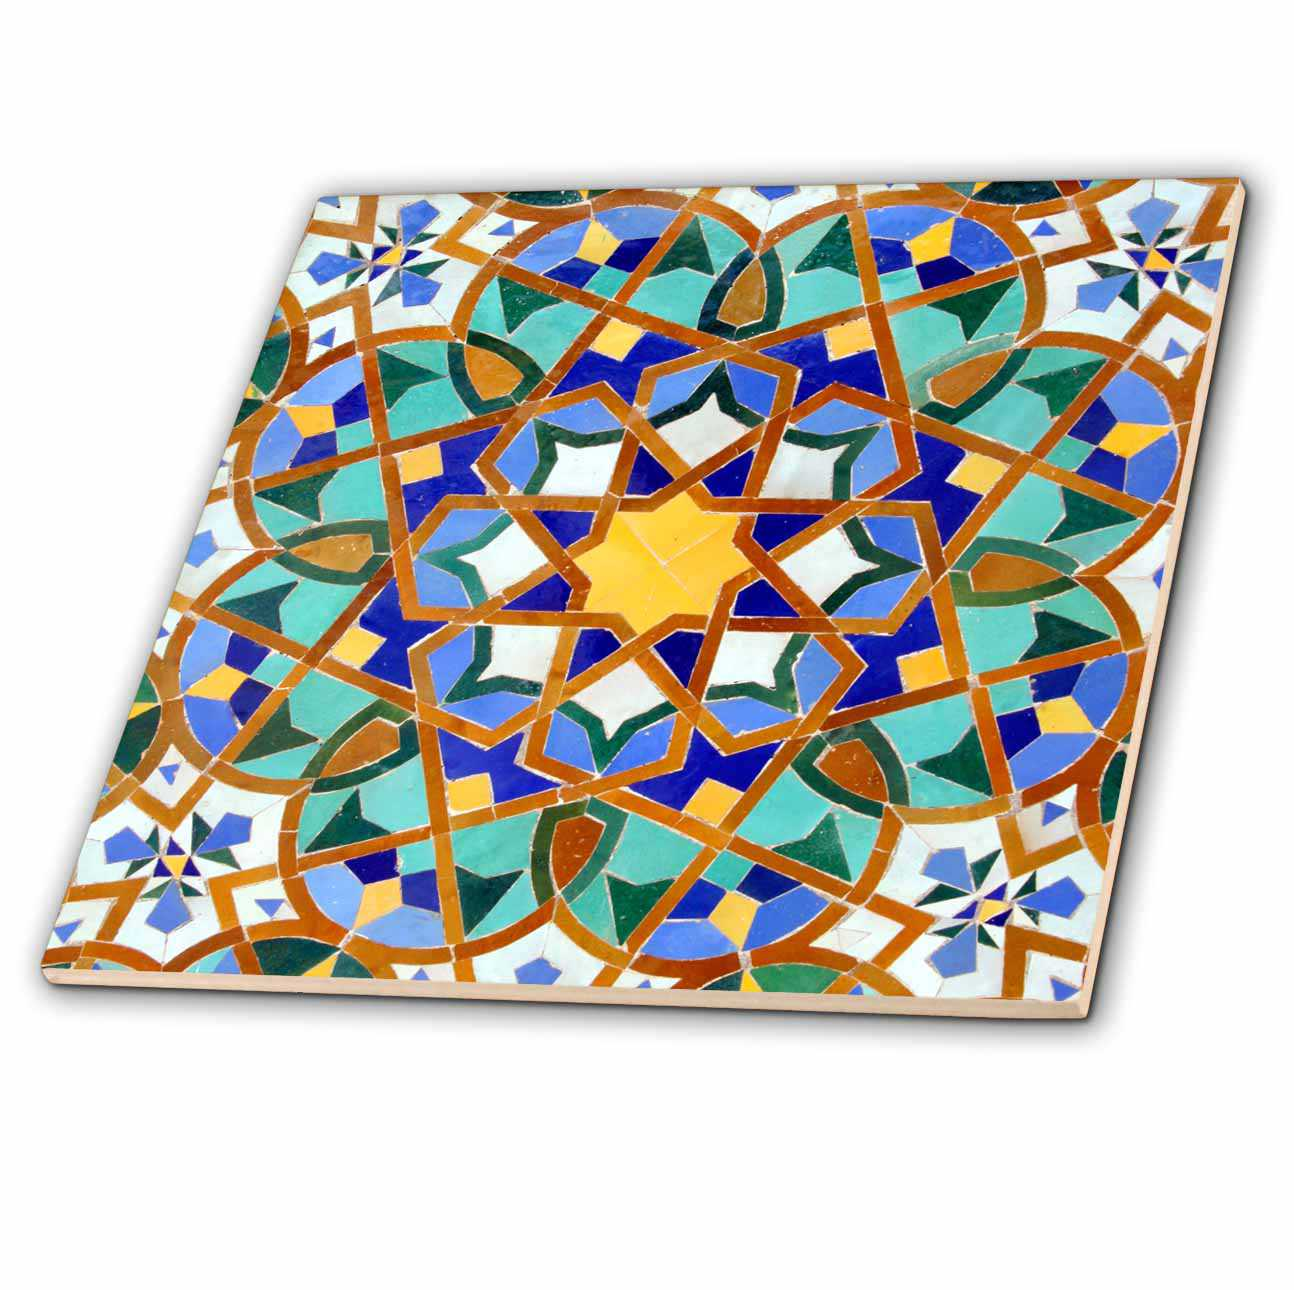 3dRose Morocco, Hassan II Mosque mosaic, Islamic tile detail-AF29 KWI0018 - Kymri Wilt - Ceramic Tile, 4-inch